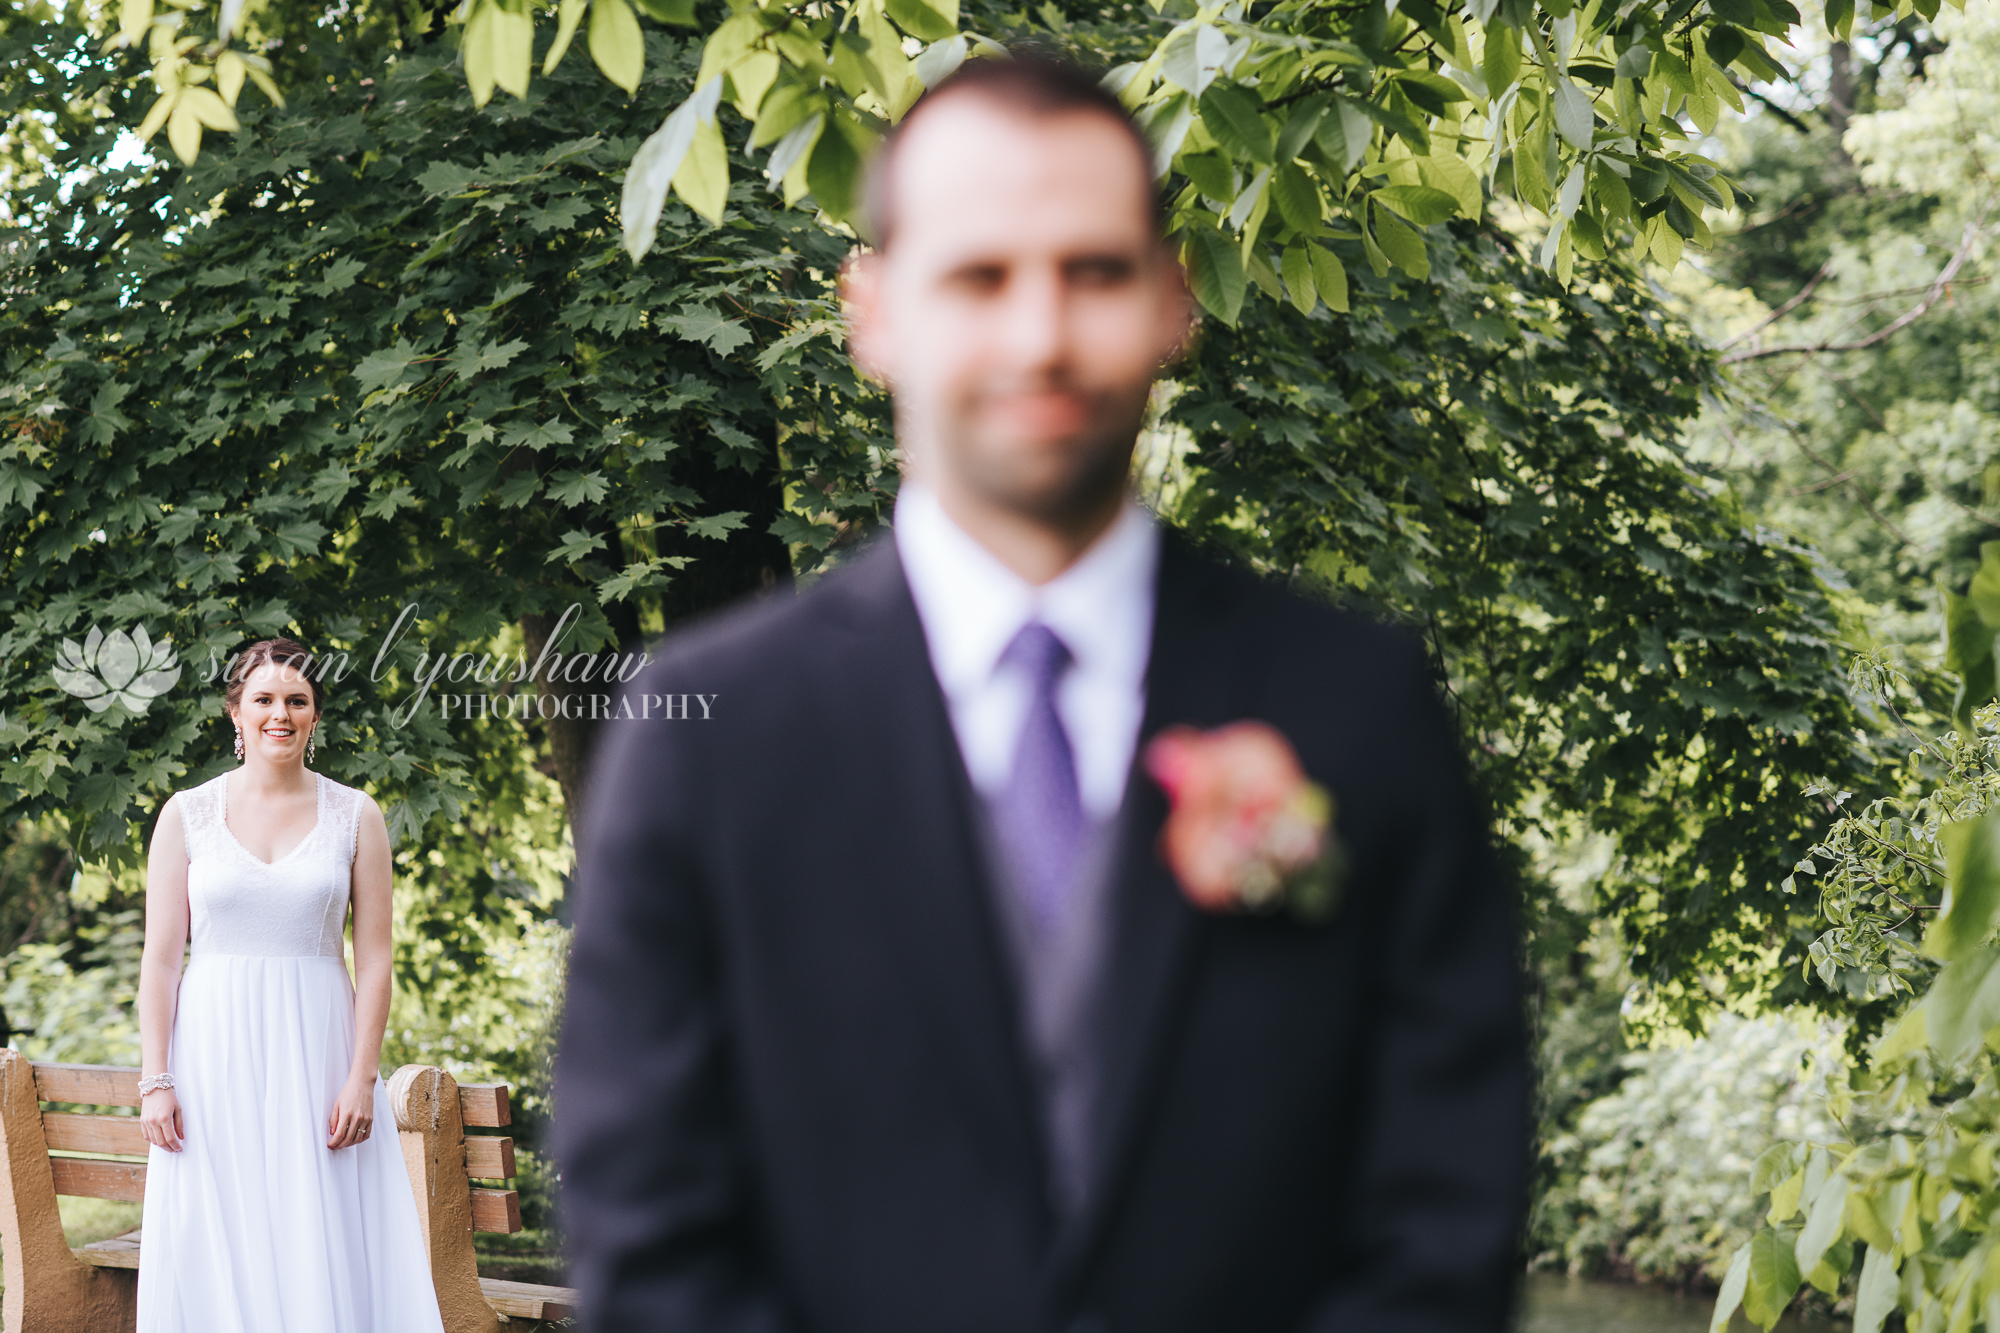 Adena and  Erik Wedding 05-17-2019 SLY Photography-16.jpg